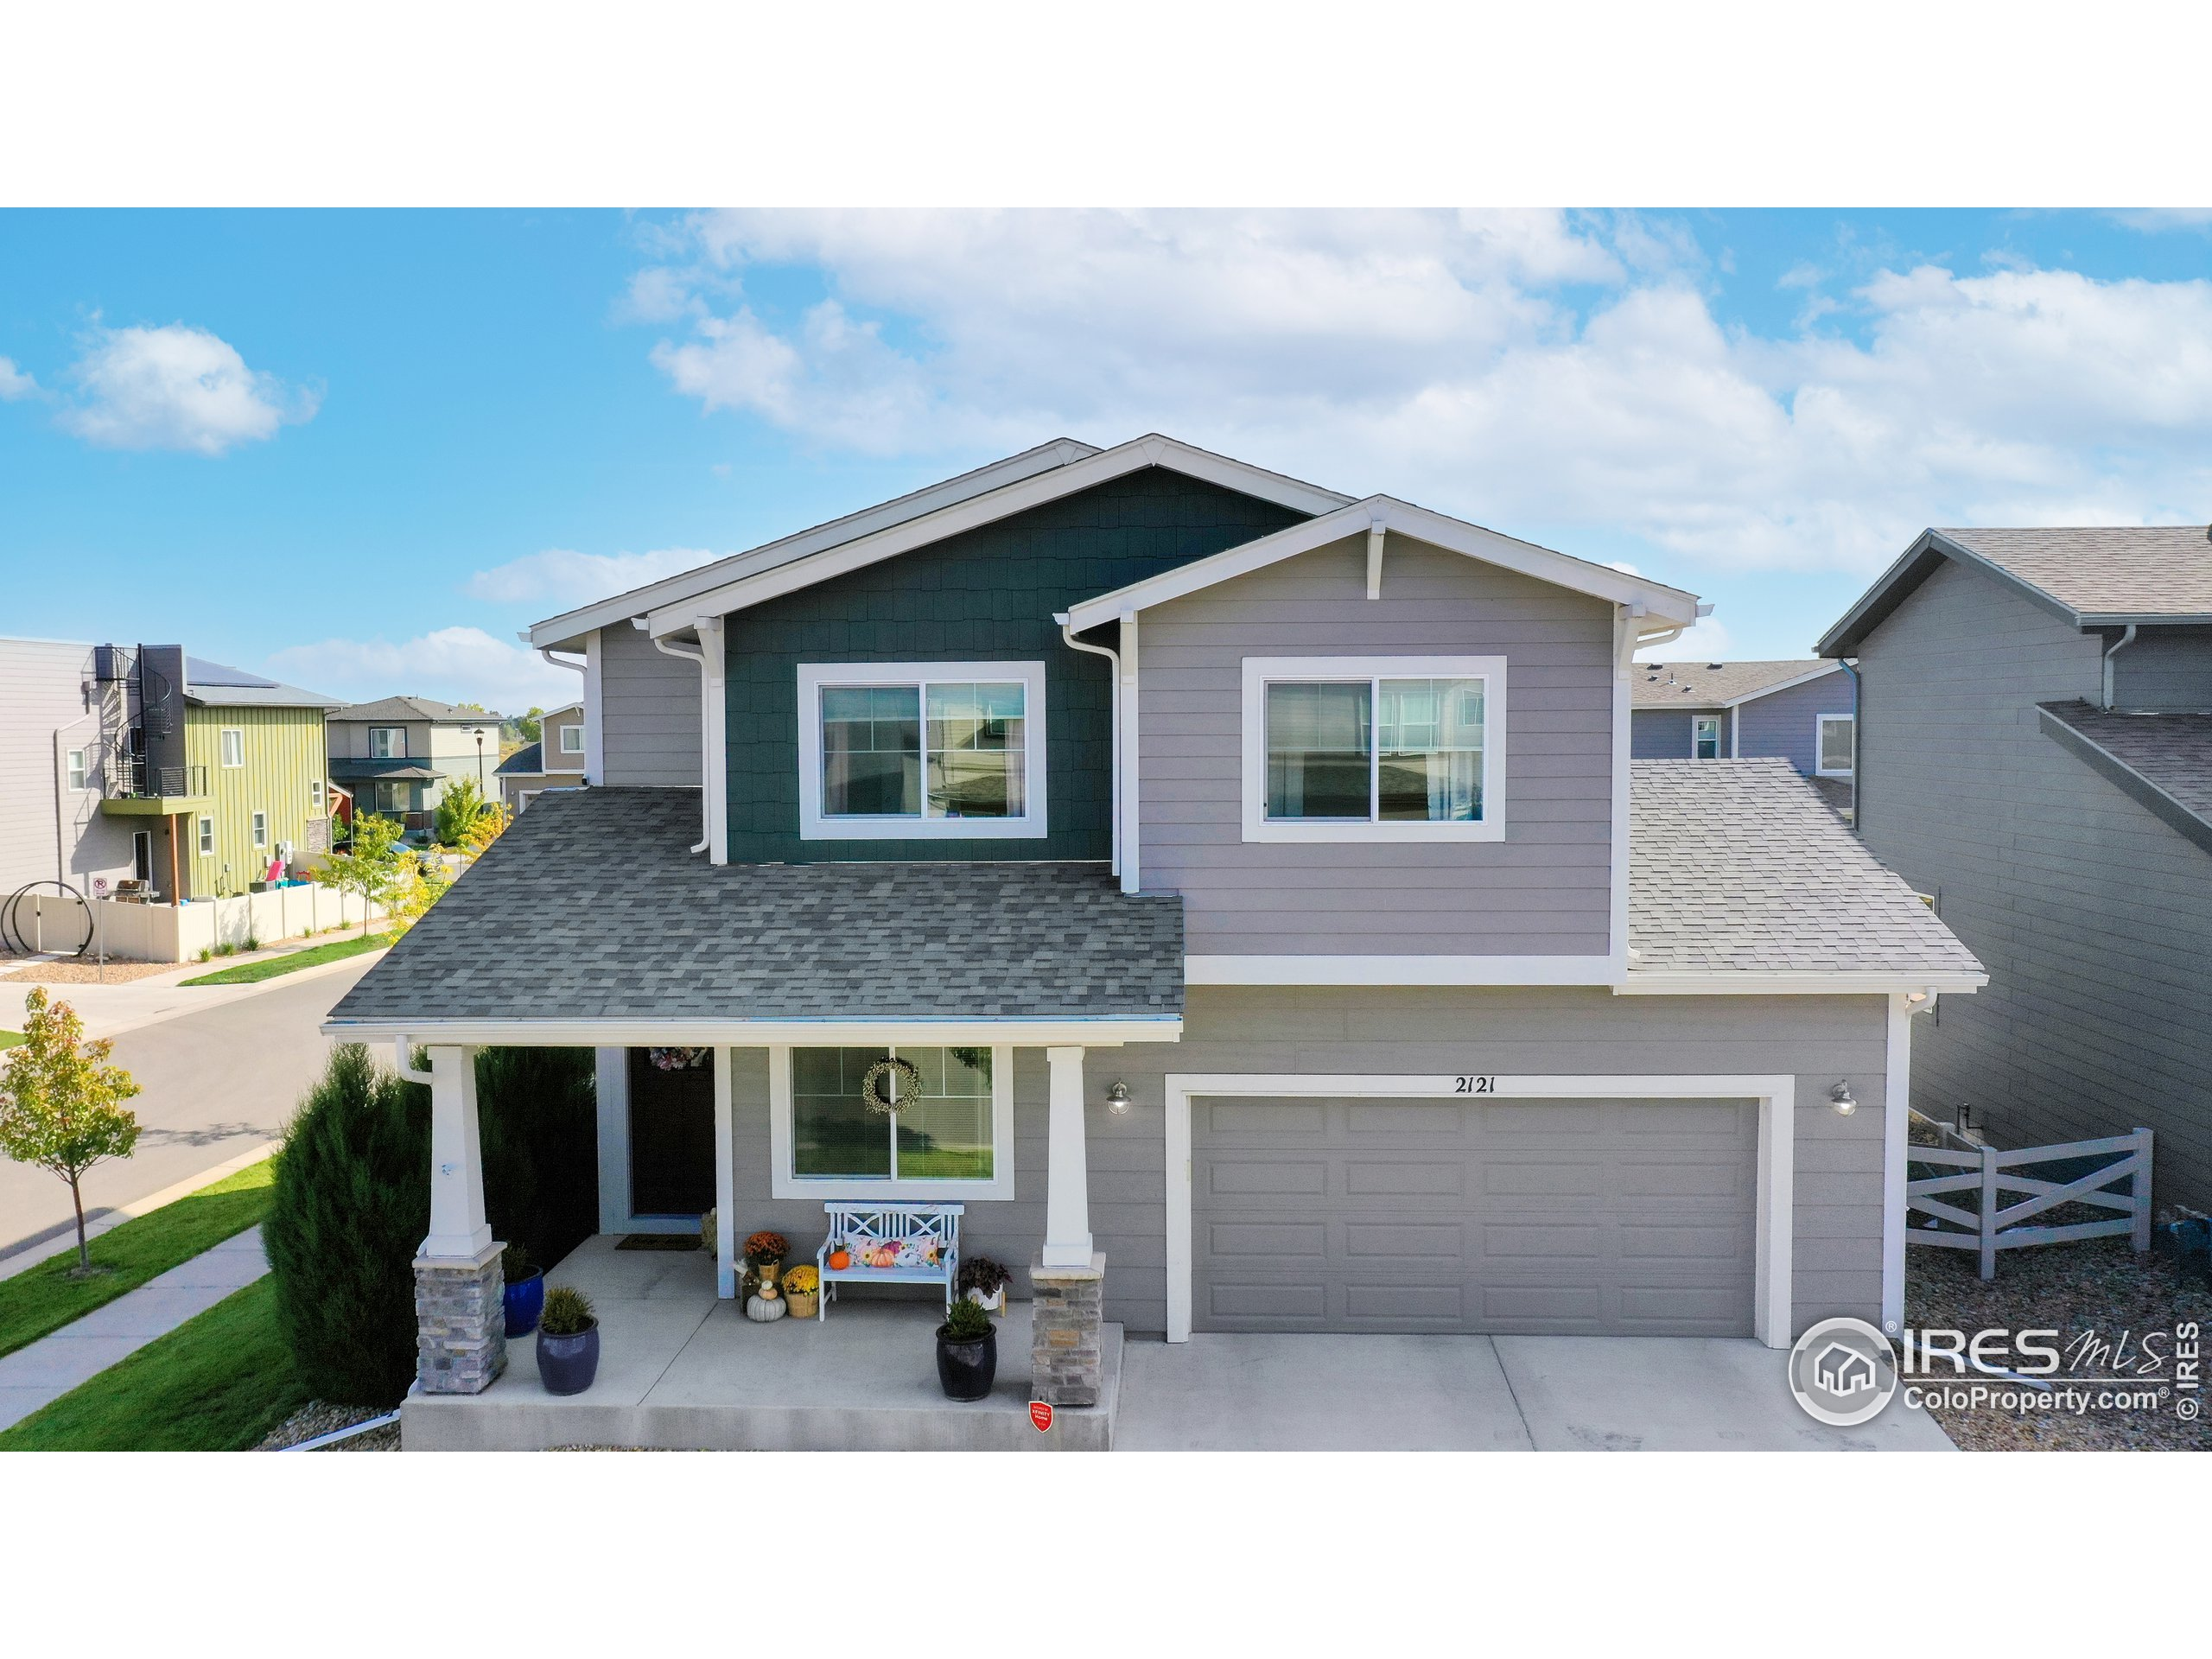 2121 Mackinac St, Fort Collins, CO 80524